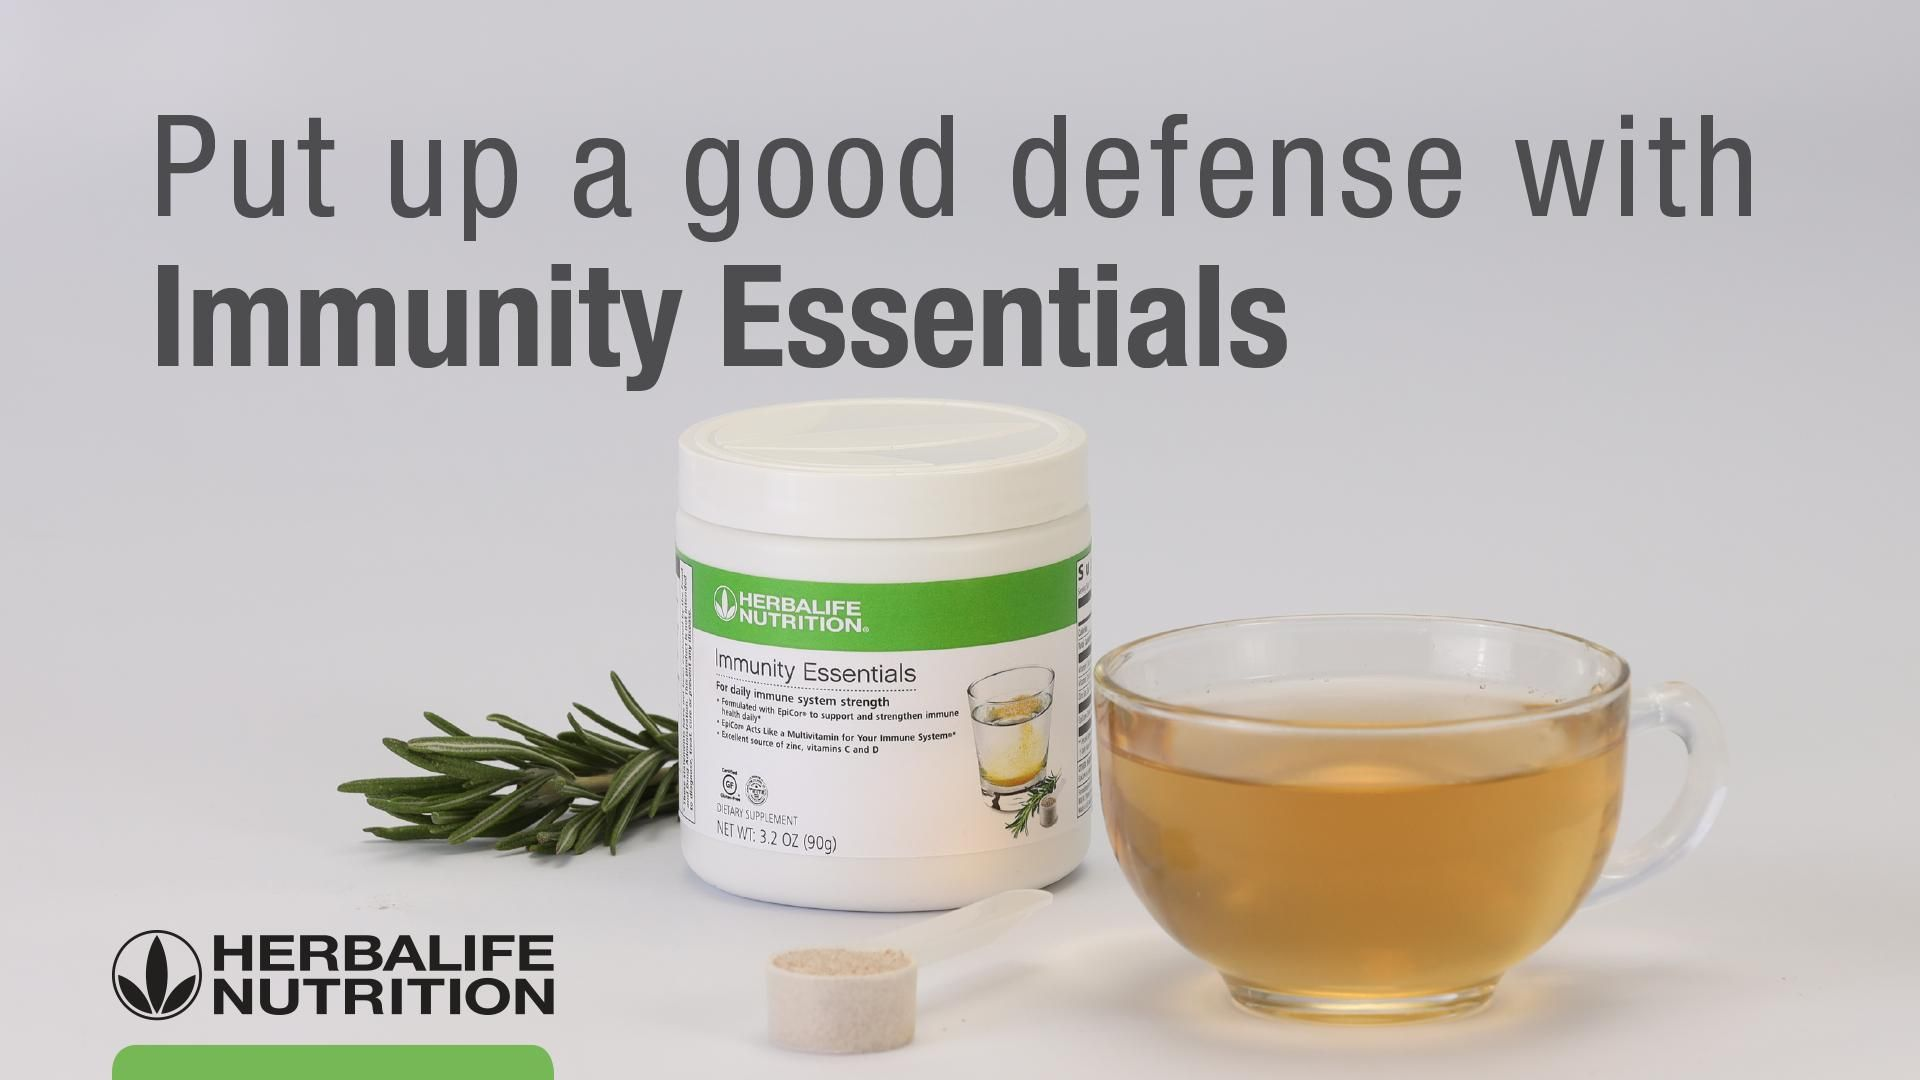 Introducing Immunity Essentials